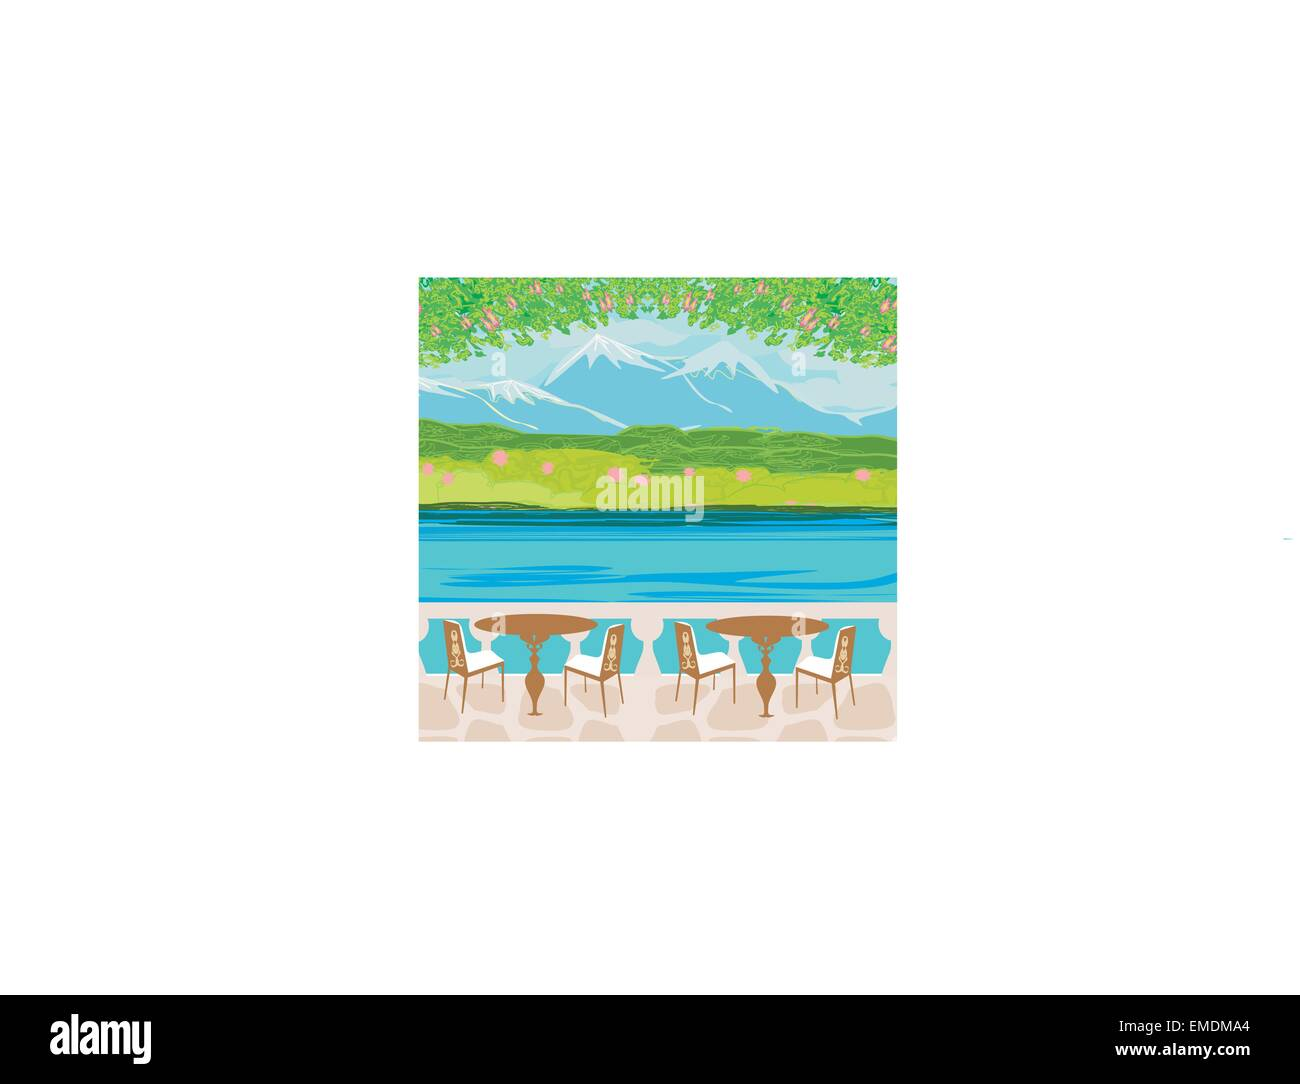 Vector landscape with mountains and cafe tables - Stock Image